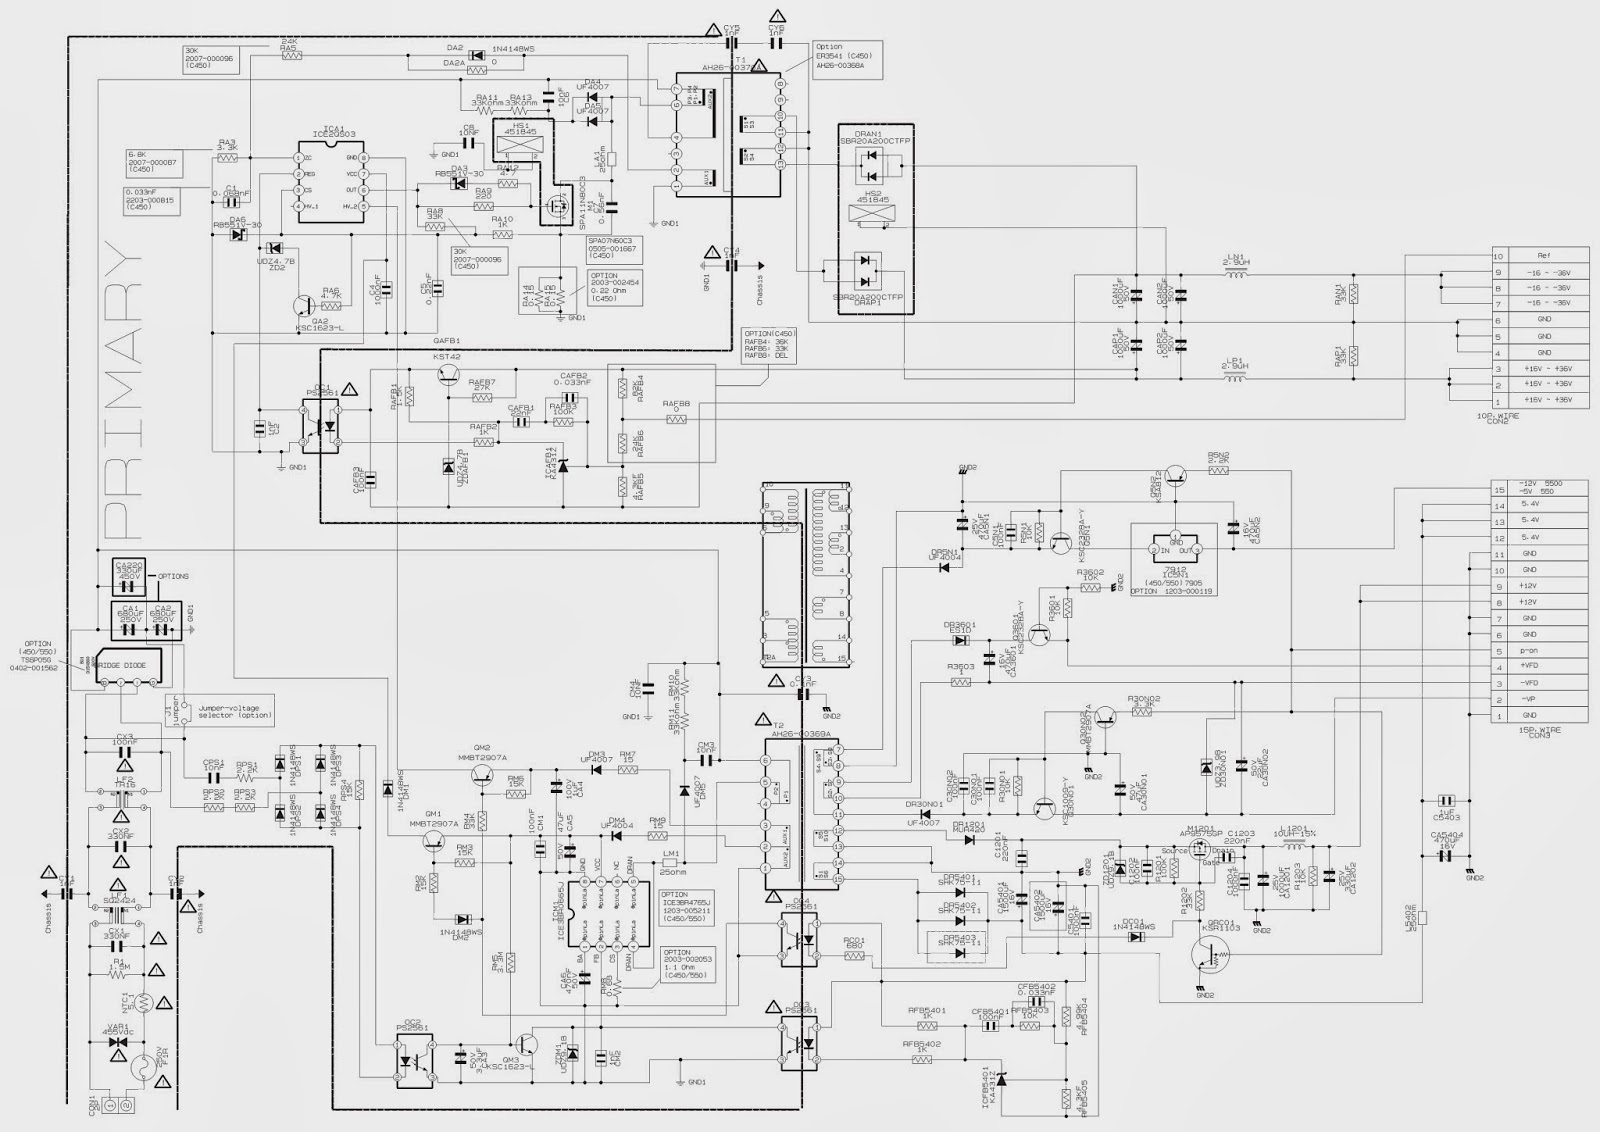 Electro help: SAMSUNG HT-C460_HT-C5500 SMPS SCHEMATIC